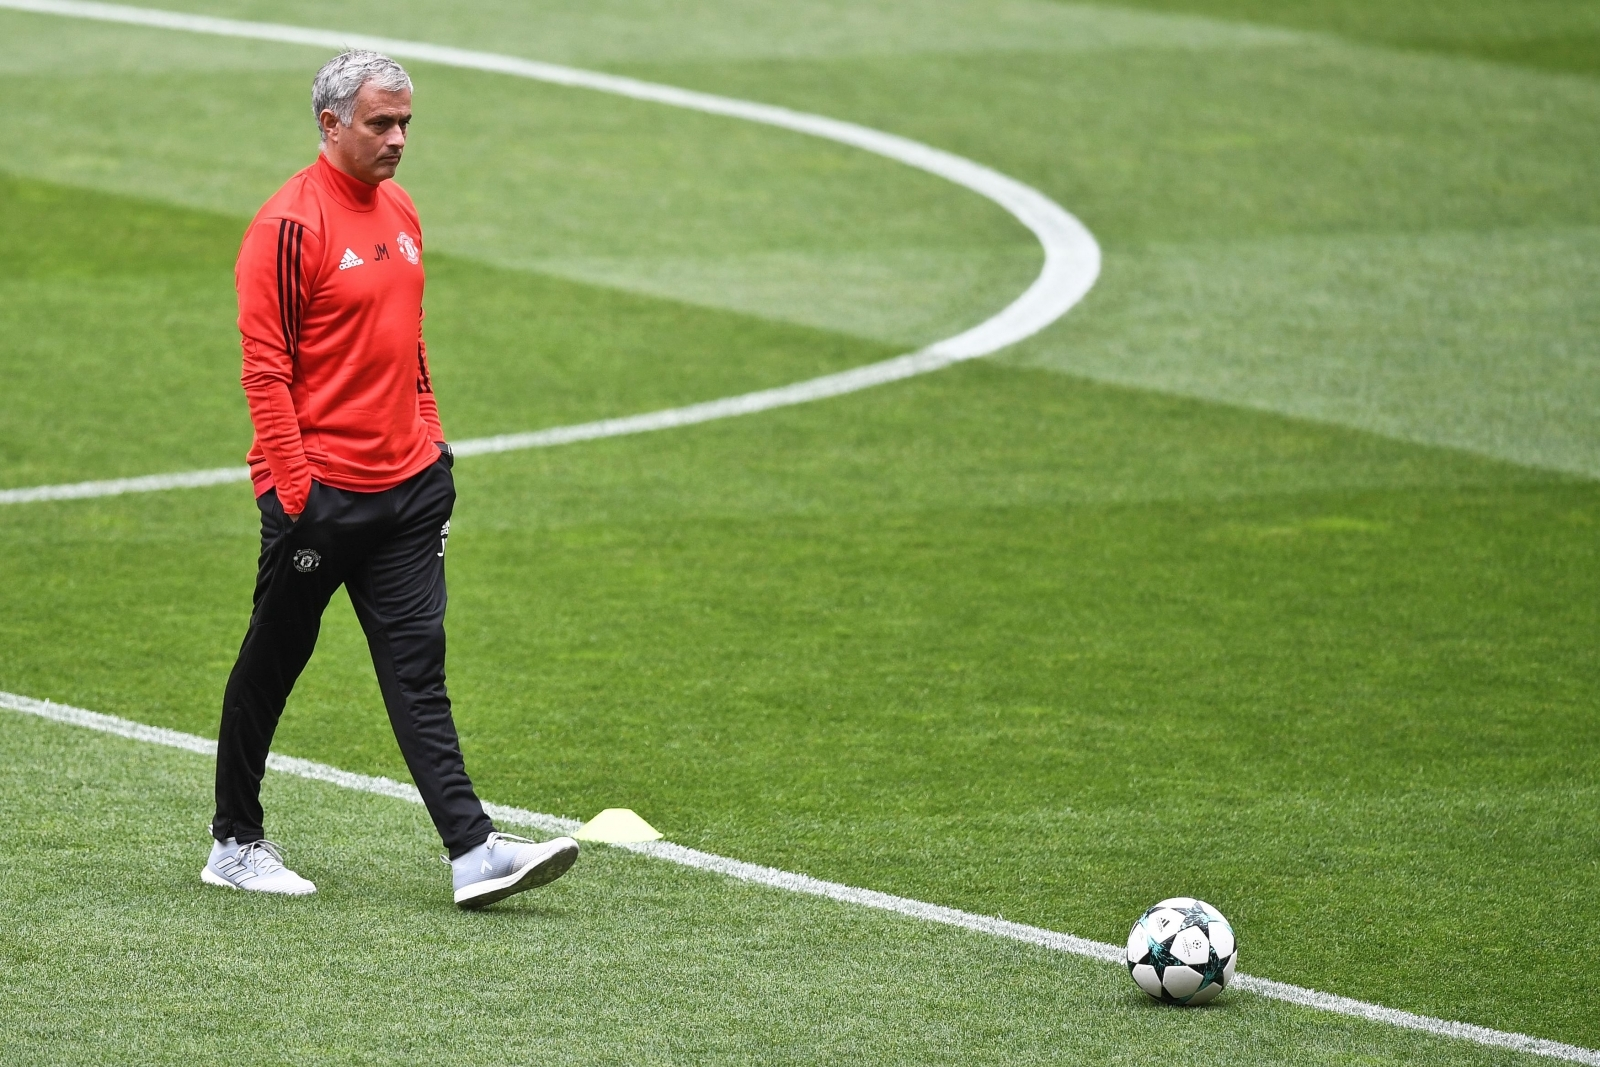 Benfica vs Manchester United: Uefa Champions League - LIVE